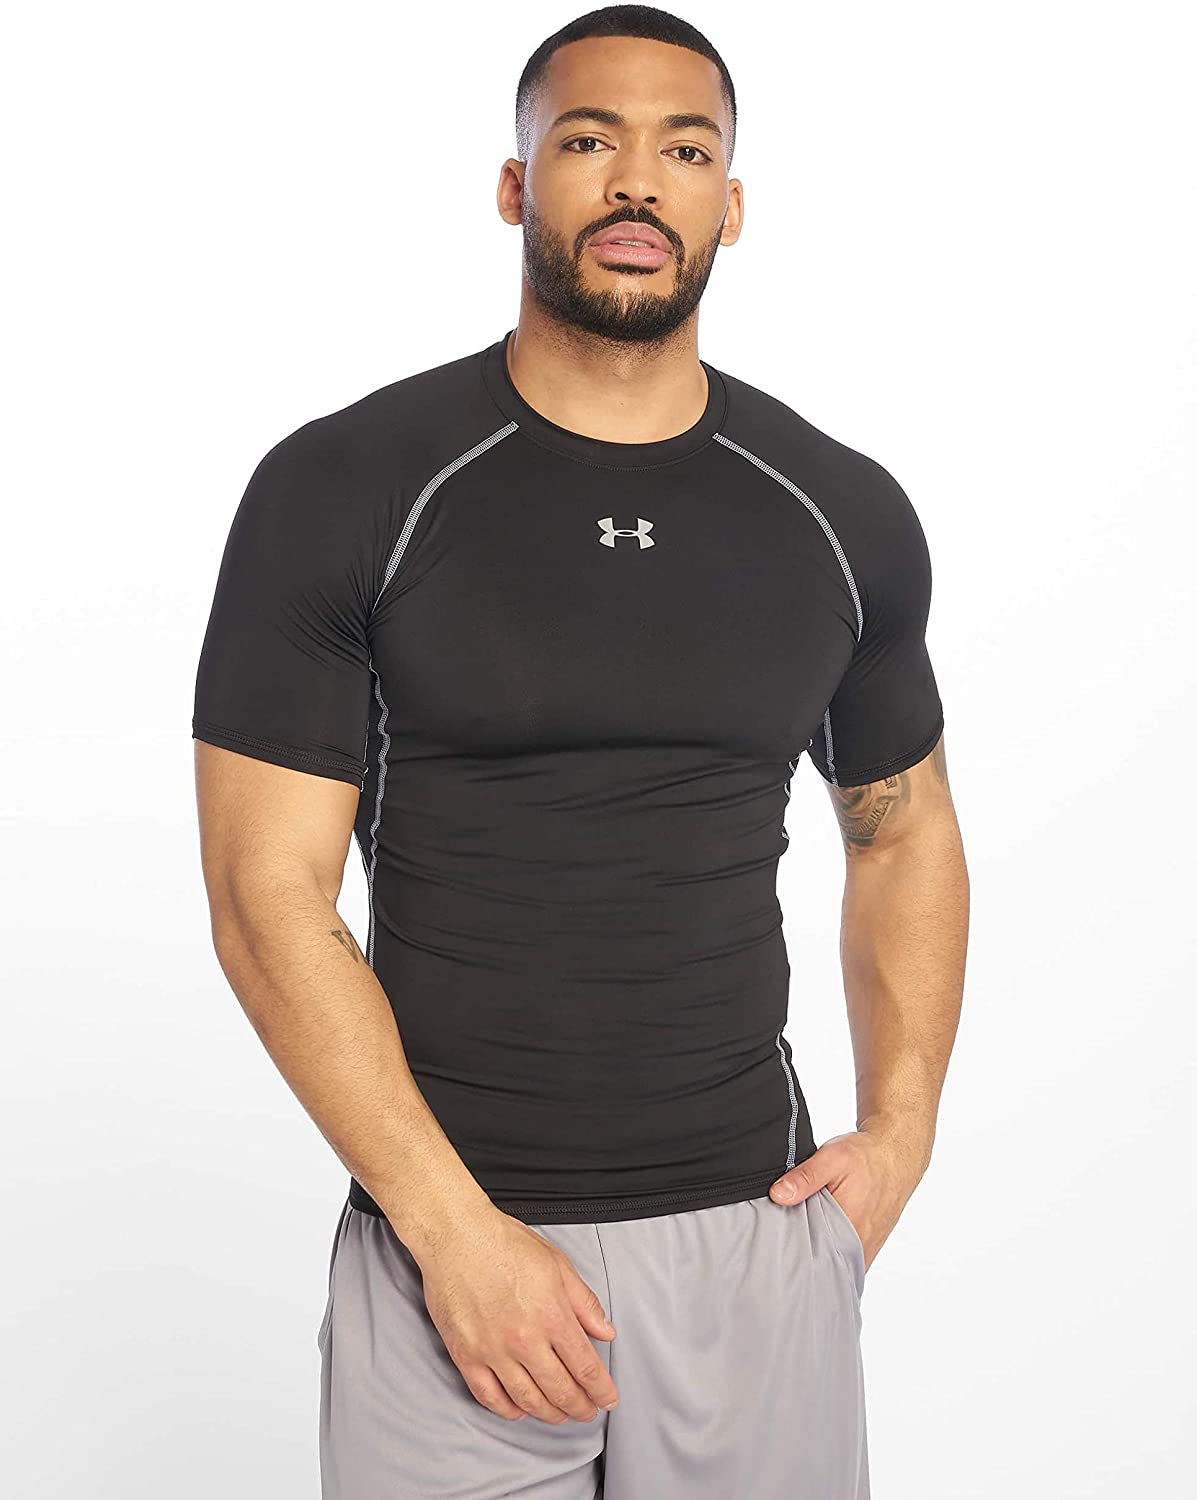 Sports Mens Hot V-neck Tight T-shirt Short Sleeve Fast-dry Fitness Tank Top DS